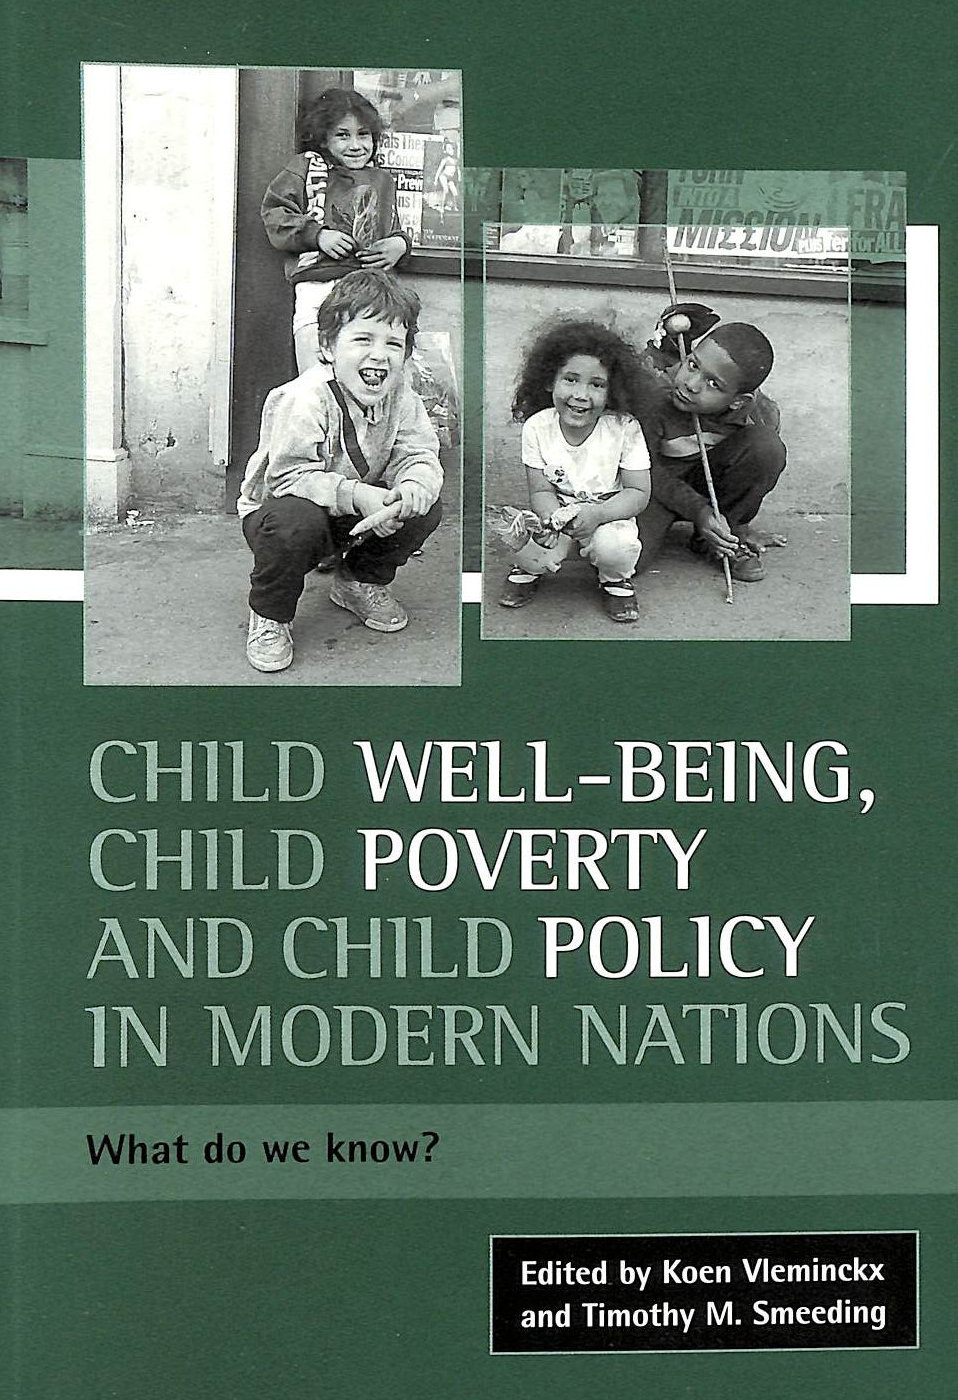 Image for Child well-being, child poverty and child policy in modern nations: What do we know?